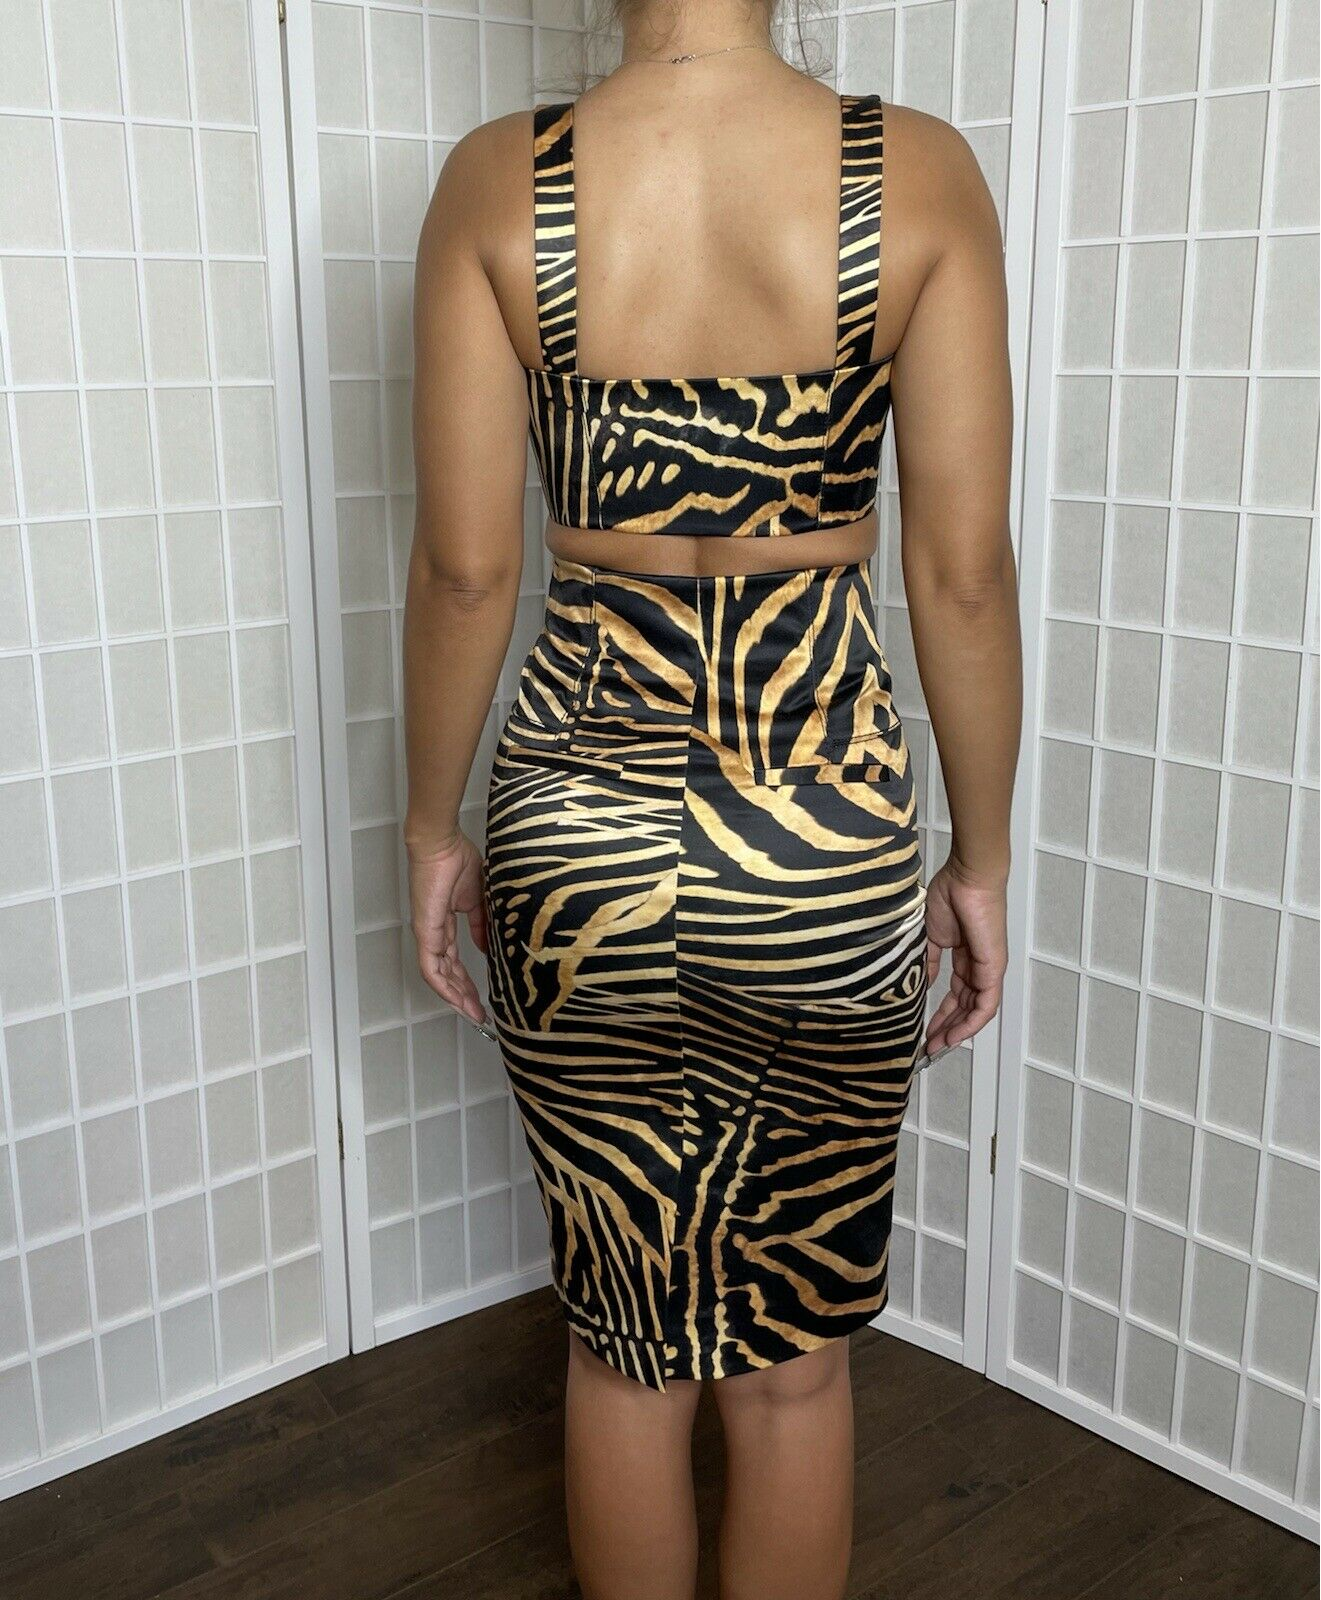 marciano two piece  - image 2